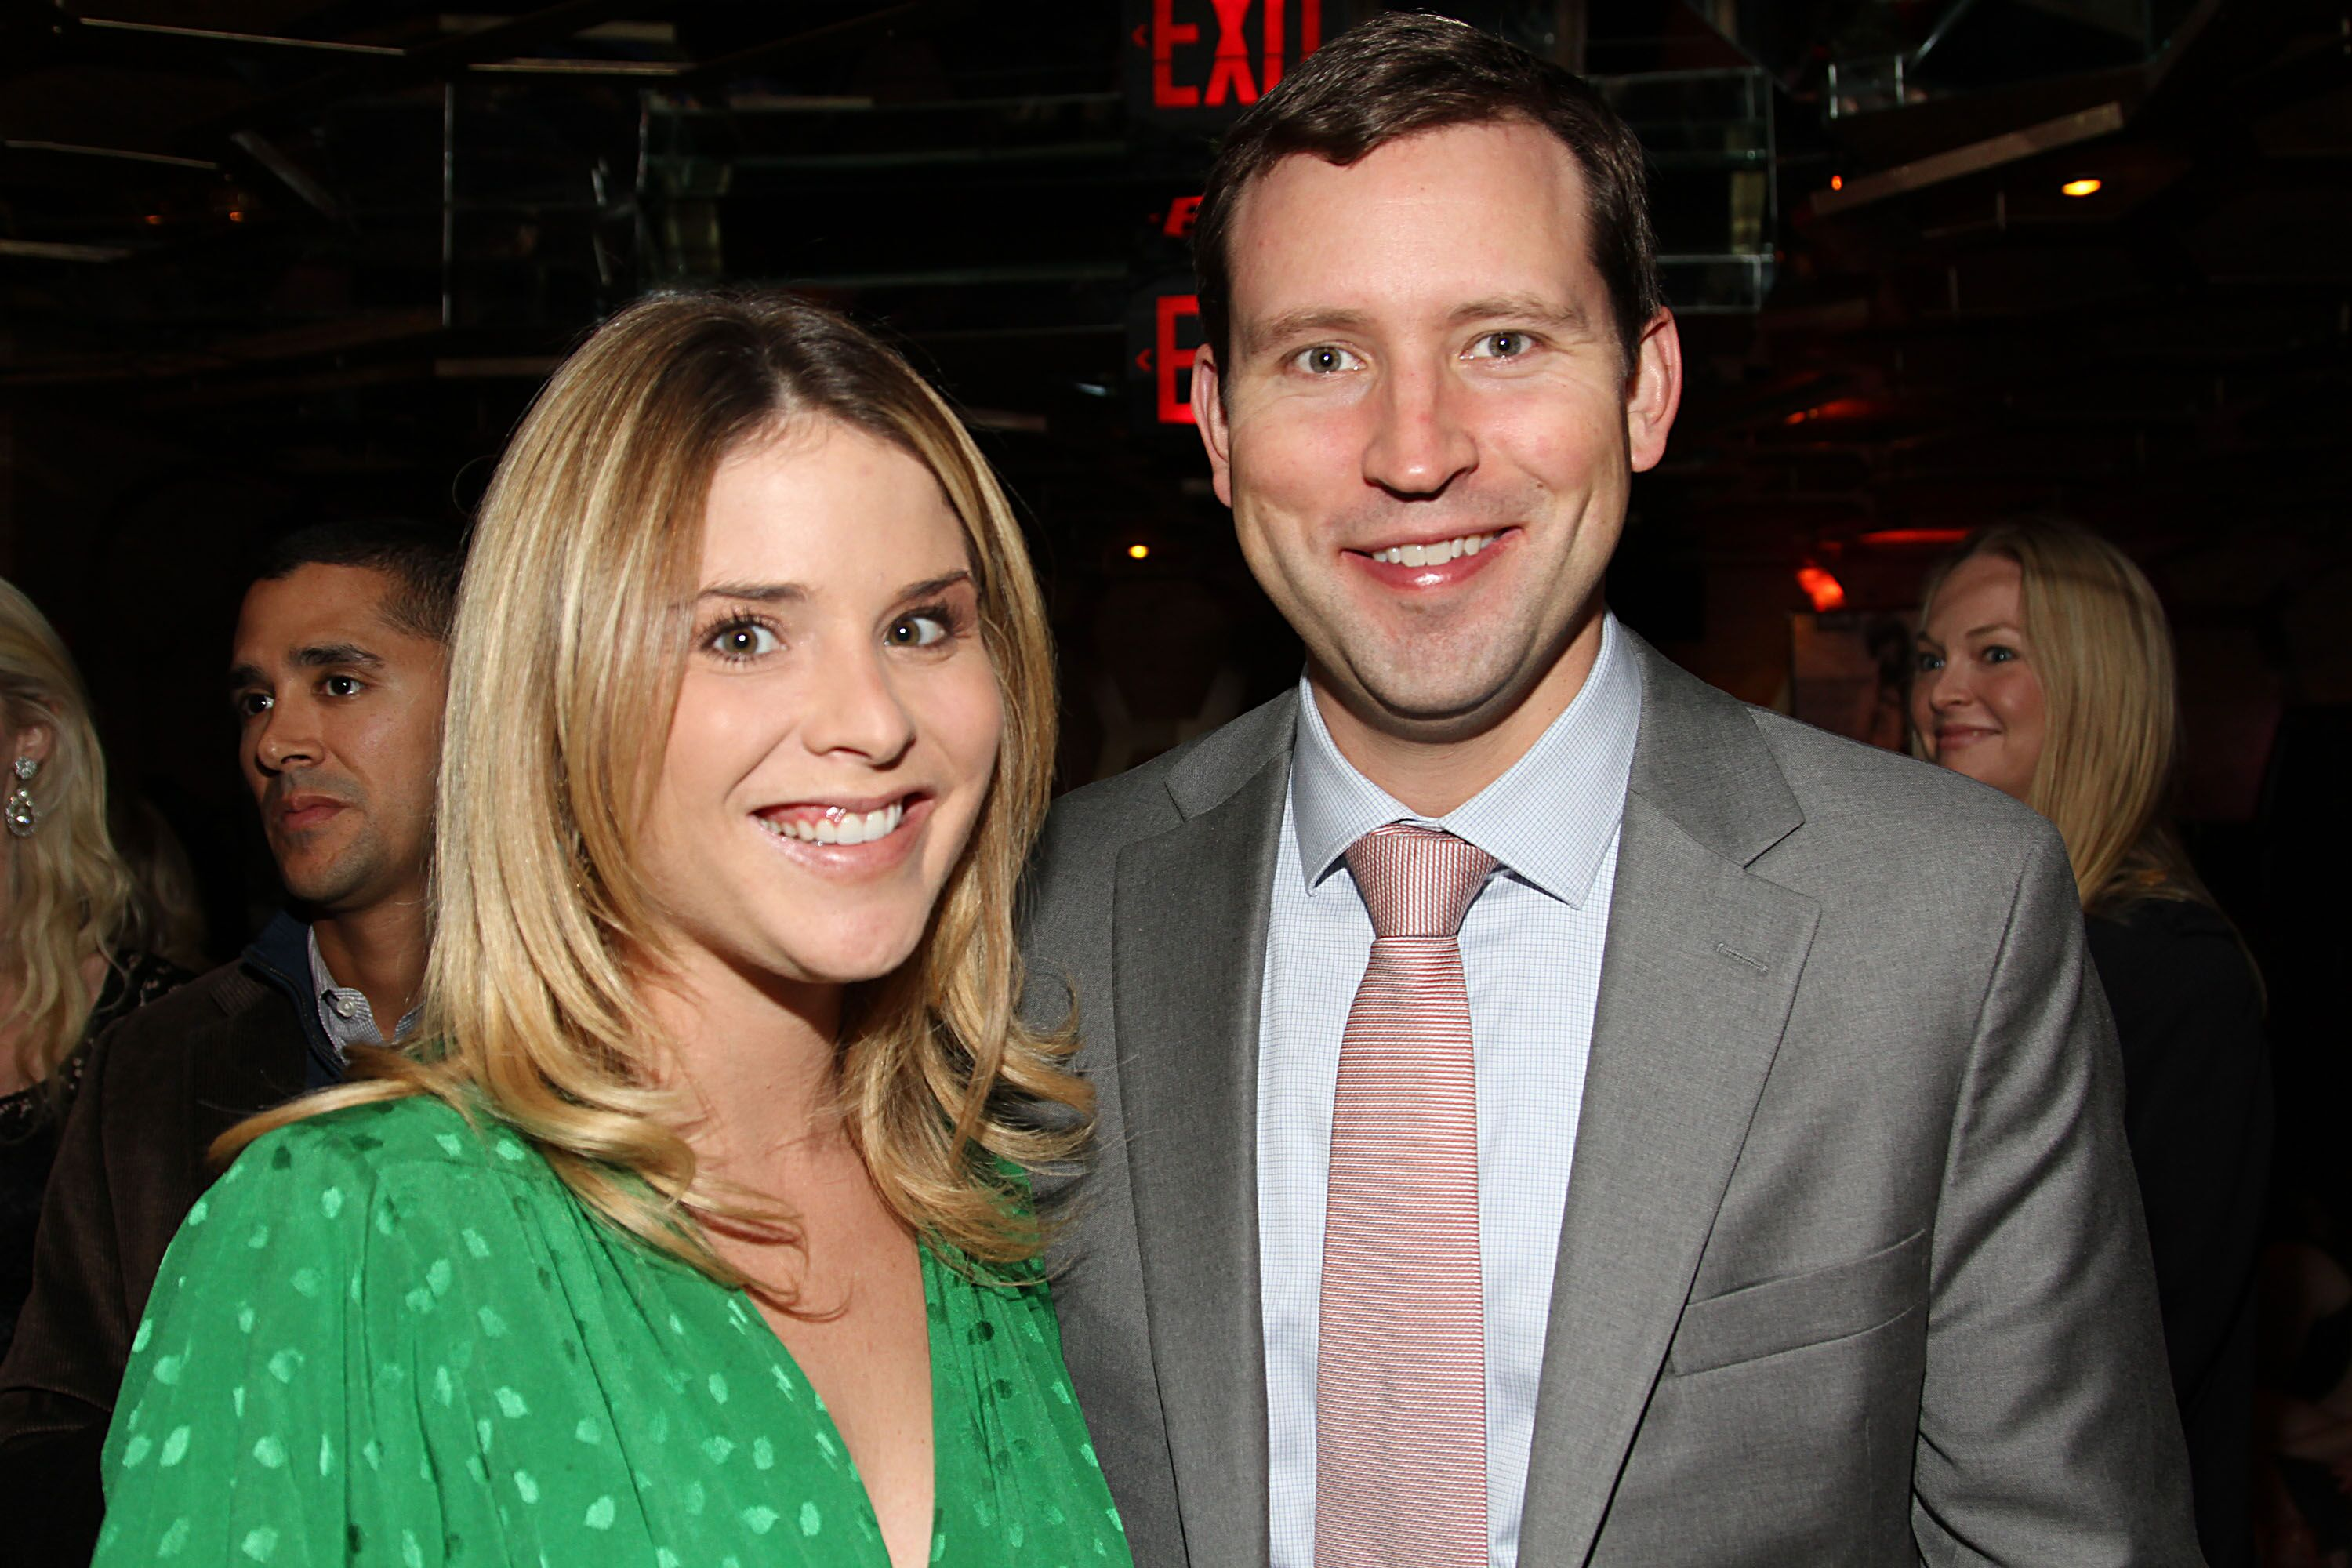 enna Bush Hager and husband Henry Chase Hager at the Georgia Campaign for Adolescent Pregnancy Prevention at Darby Downstairs on October 11, 2012 in New York City. | Photo: Getty Images